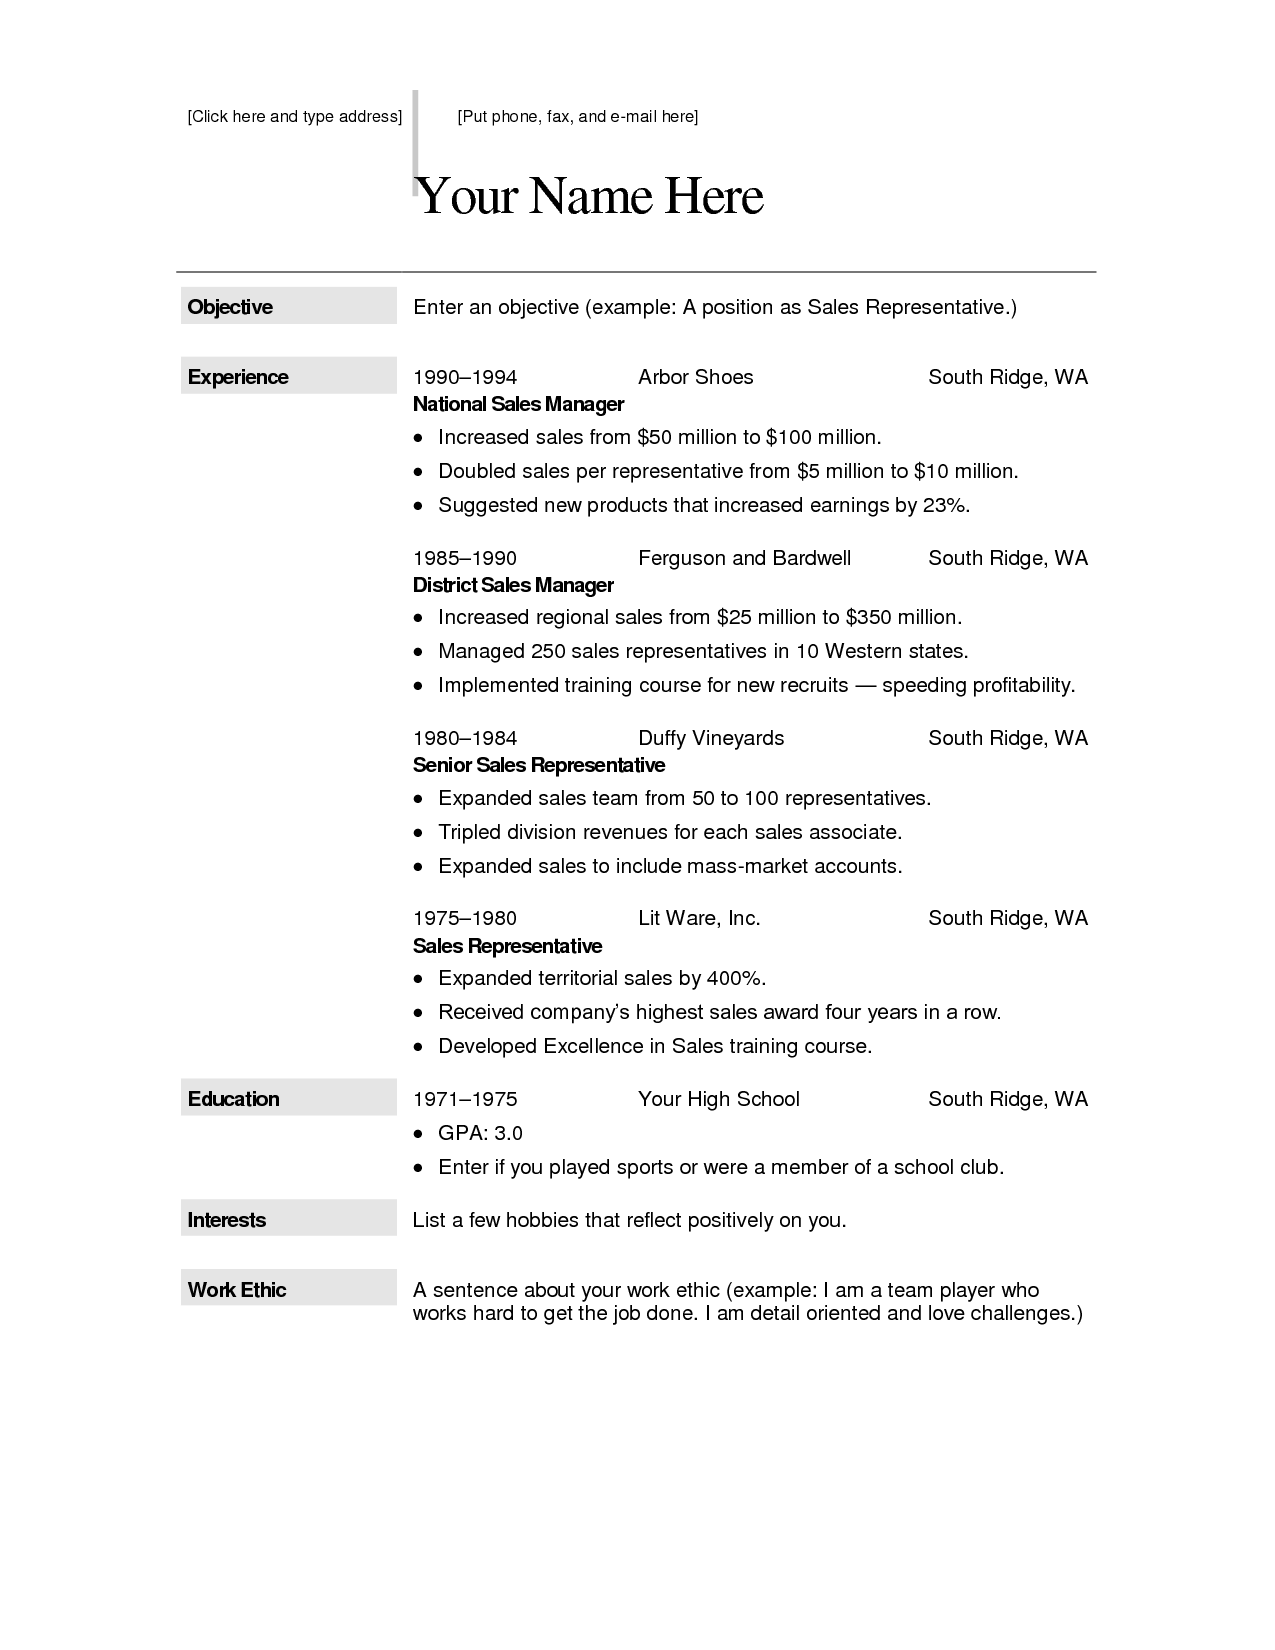 Free Resume Templates Word 2010 Fair Free Creative Resume Templates For Macfree Creative Resume